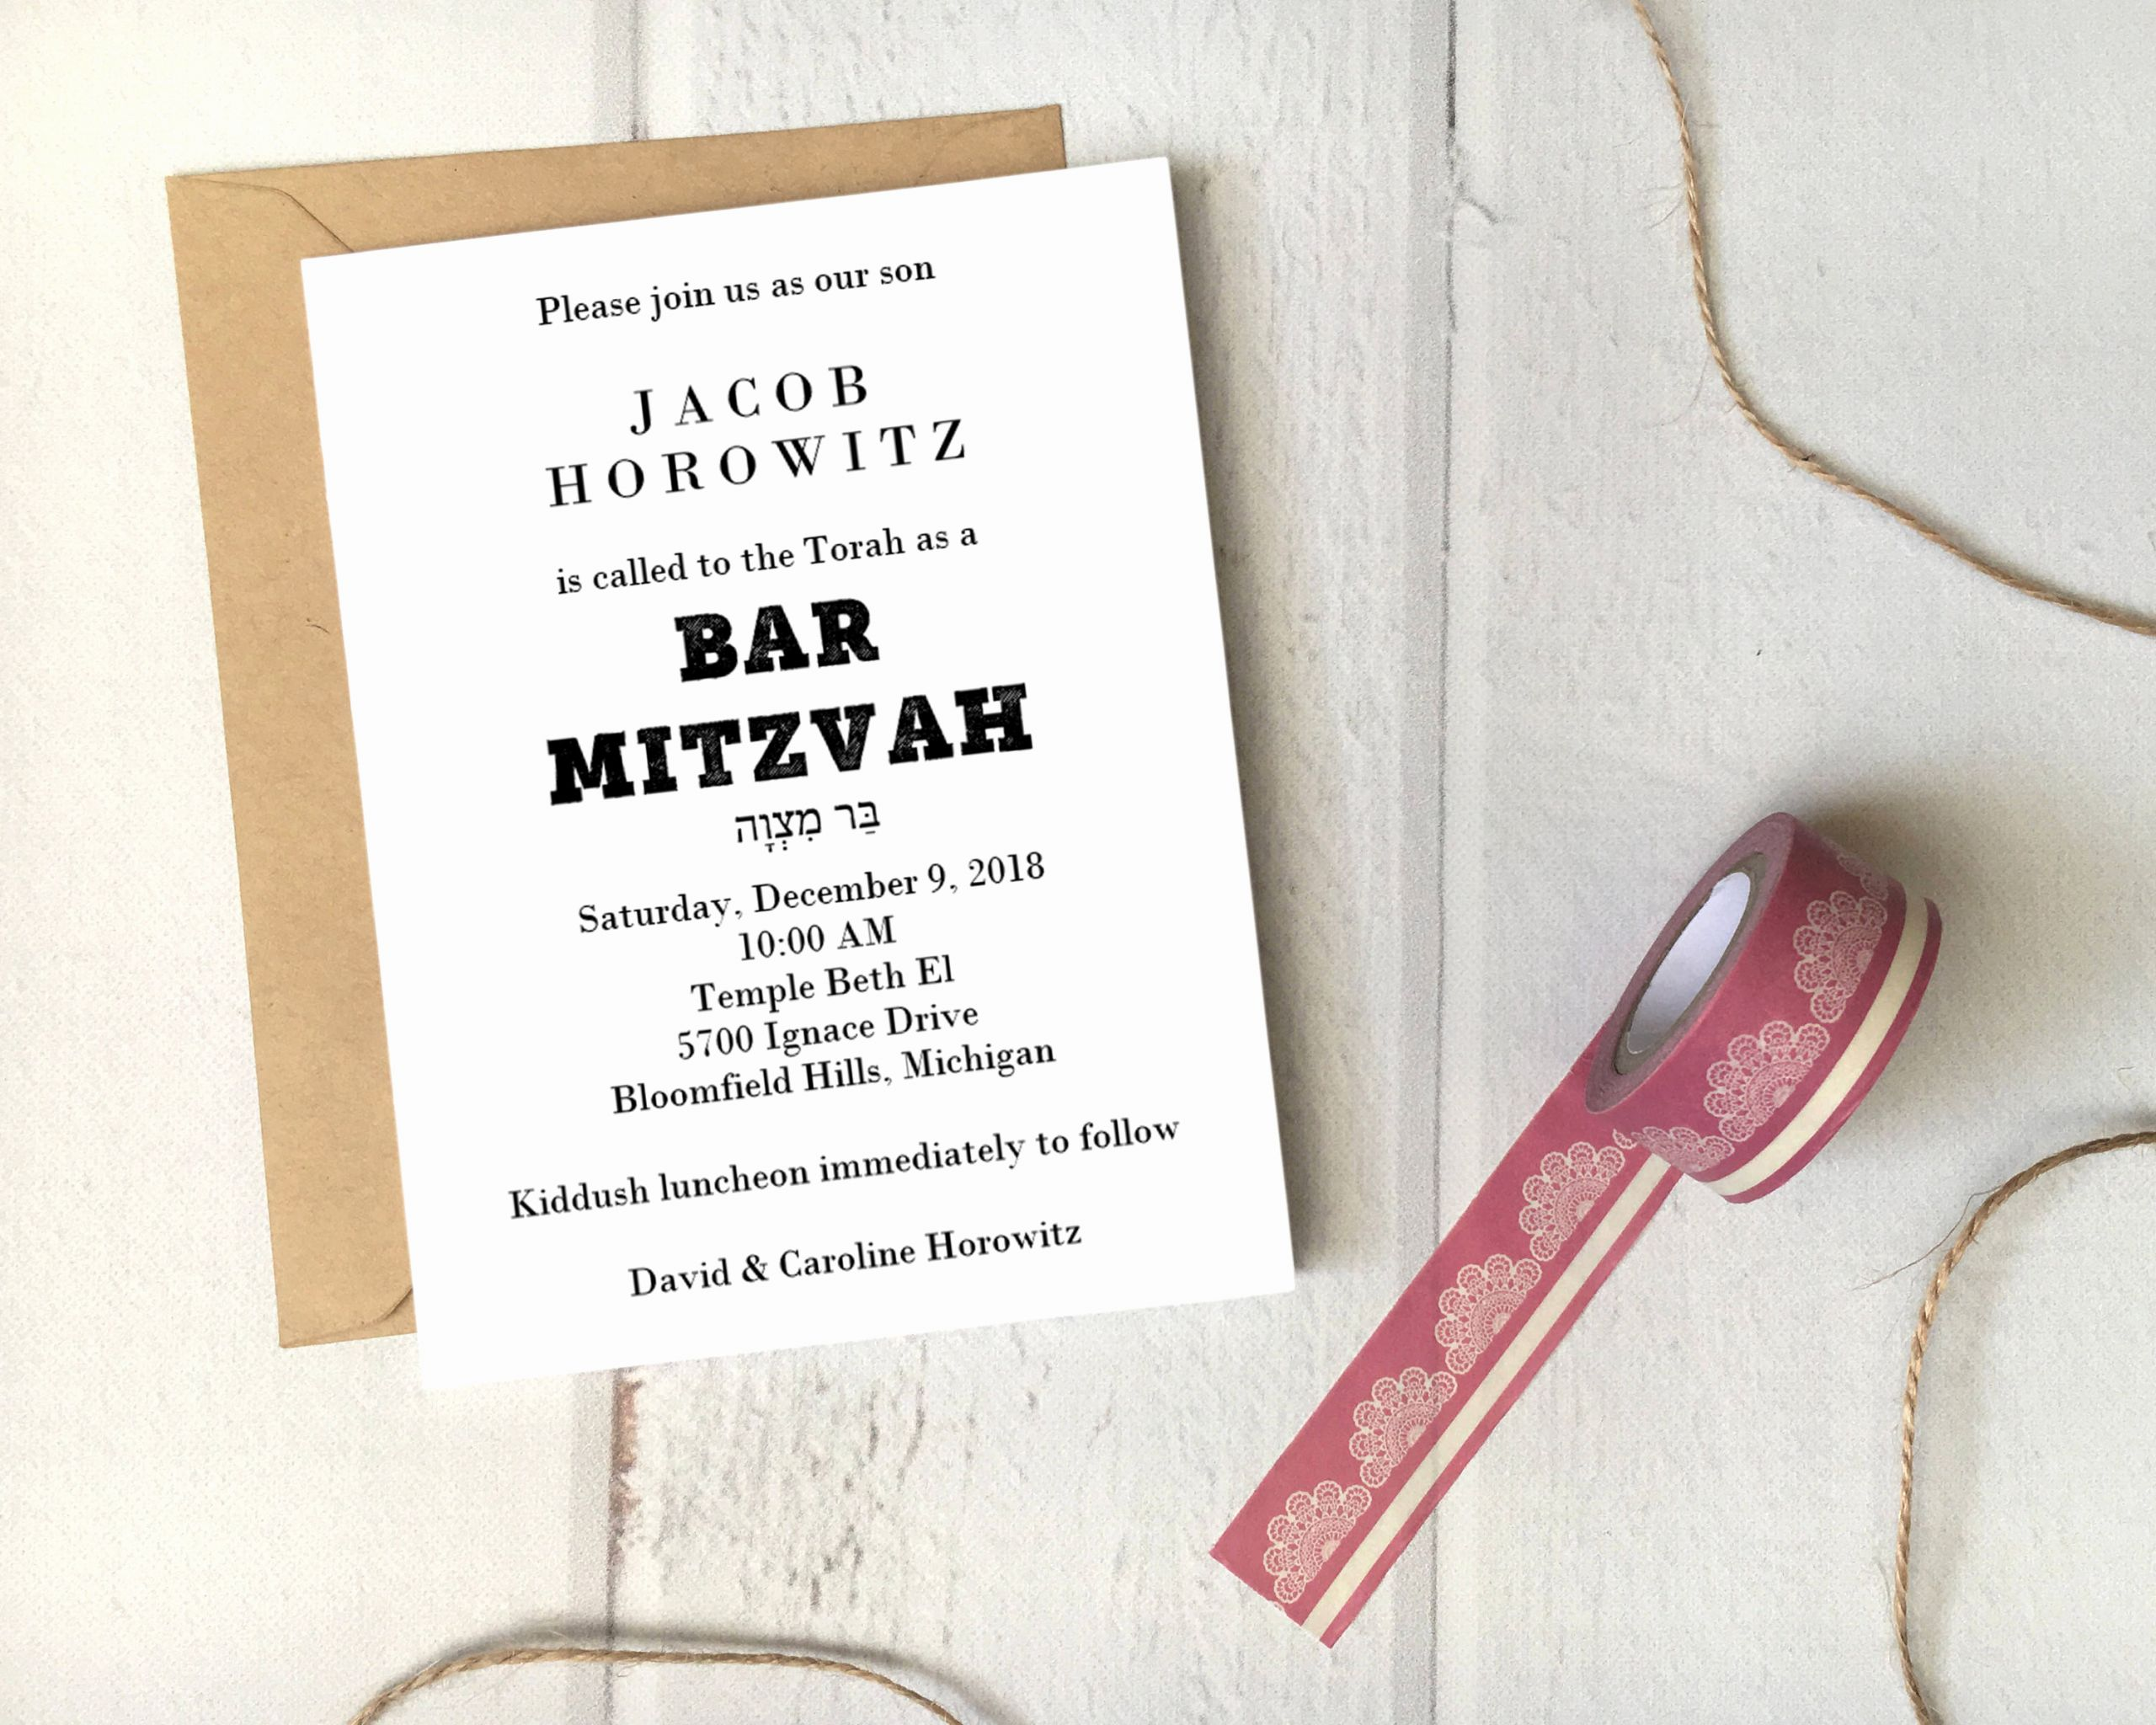 Bar Mitzvah Invitation Template Beautiful Bar Mitzvah Invitation Printable Hebrew Template 5x7 Card